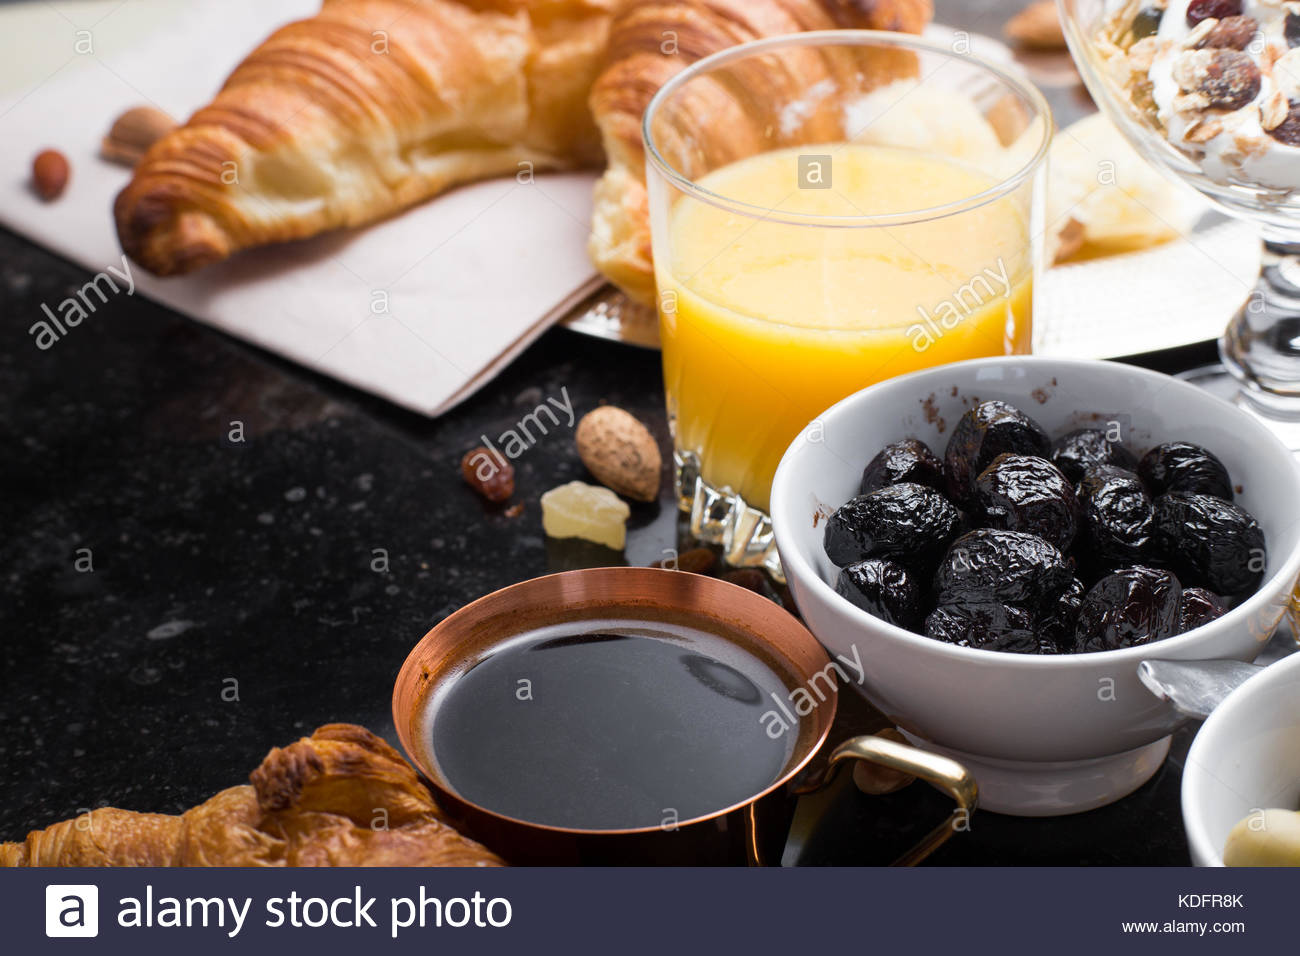 Breakfast assorted yogurt, granola, coffee, juice, croissant, olives. Appetizer mix with morning dishes. Healthy, - Stock Image